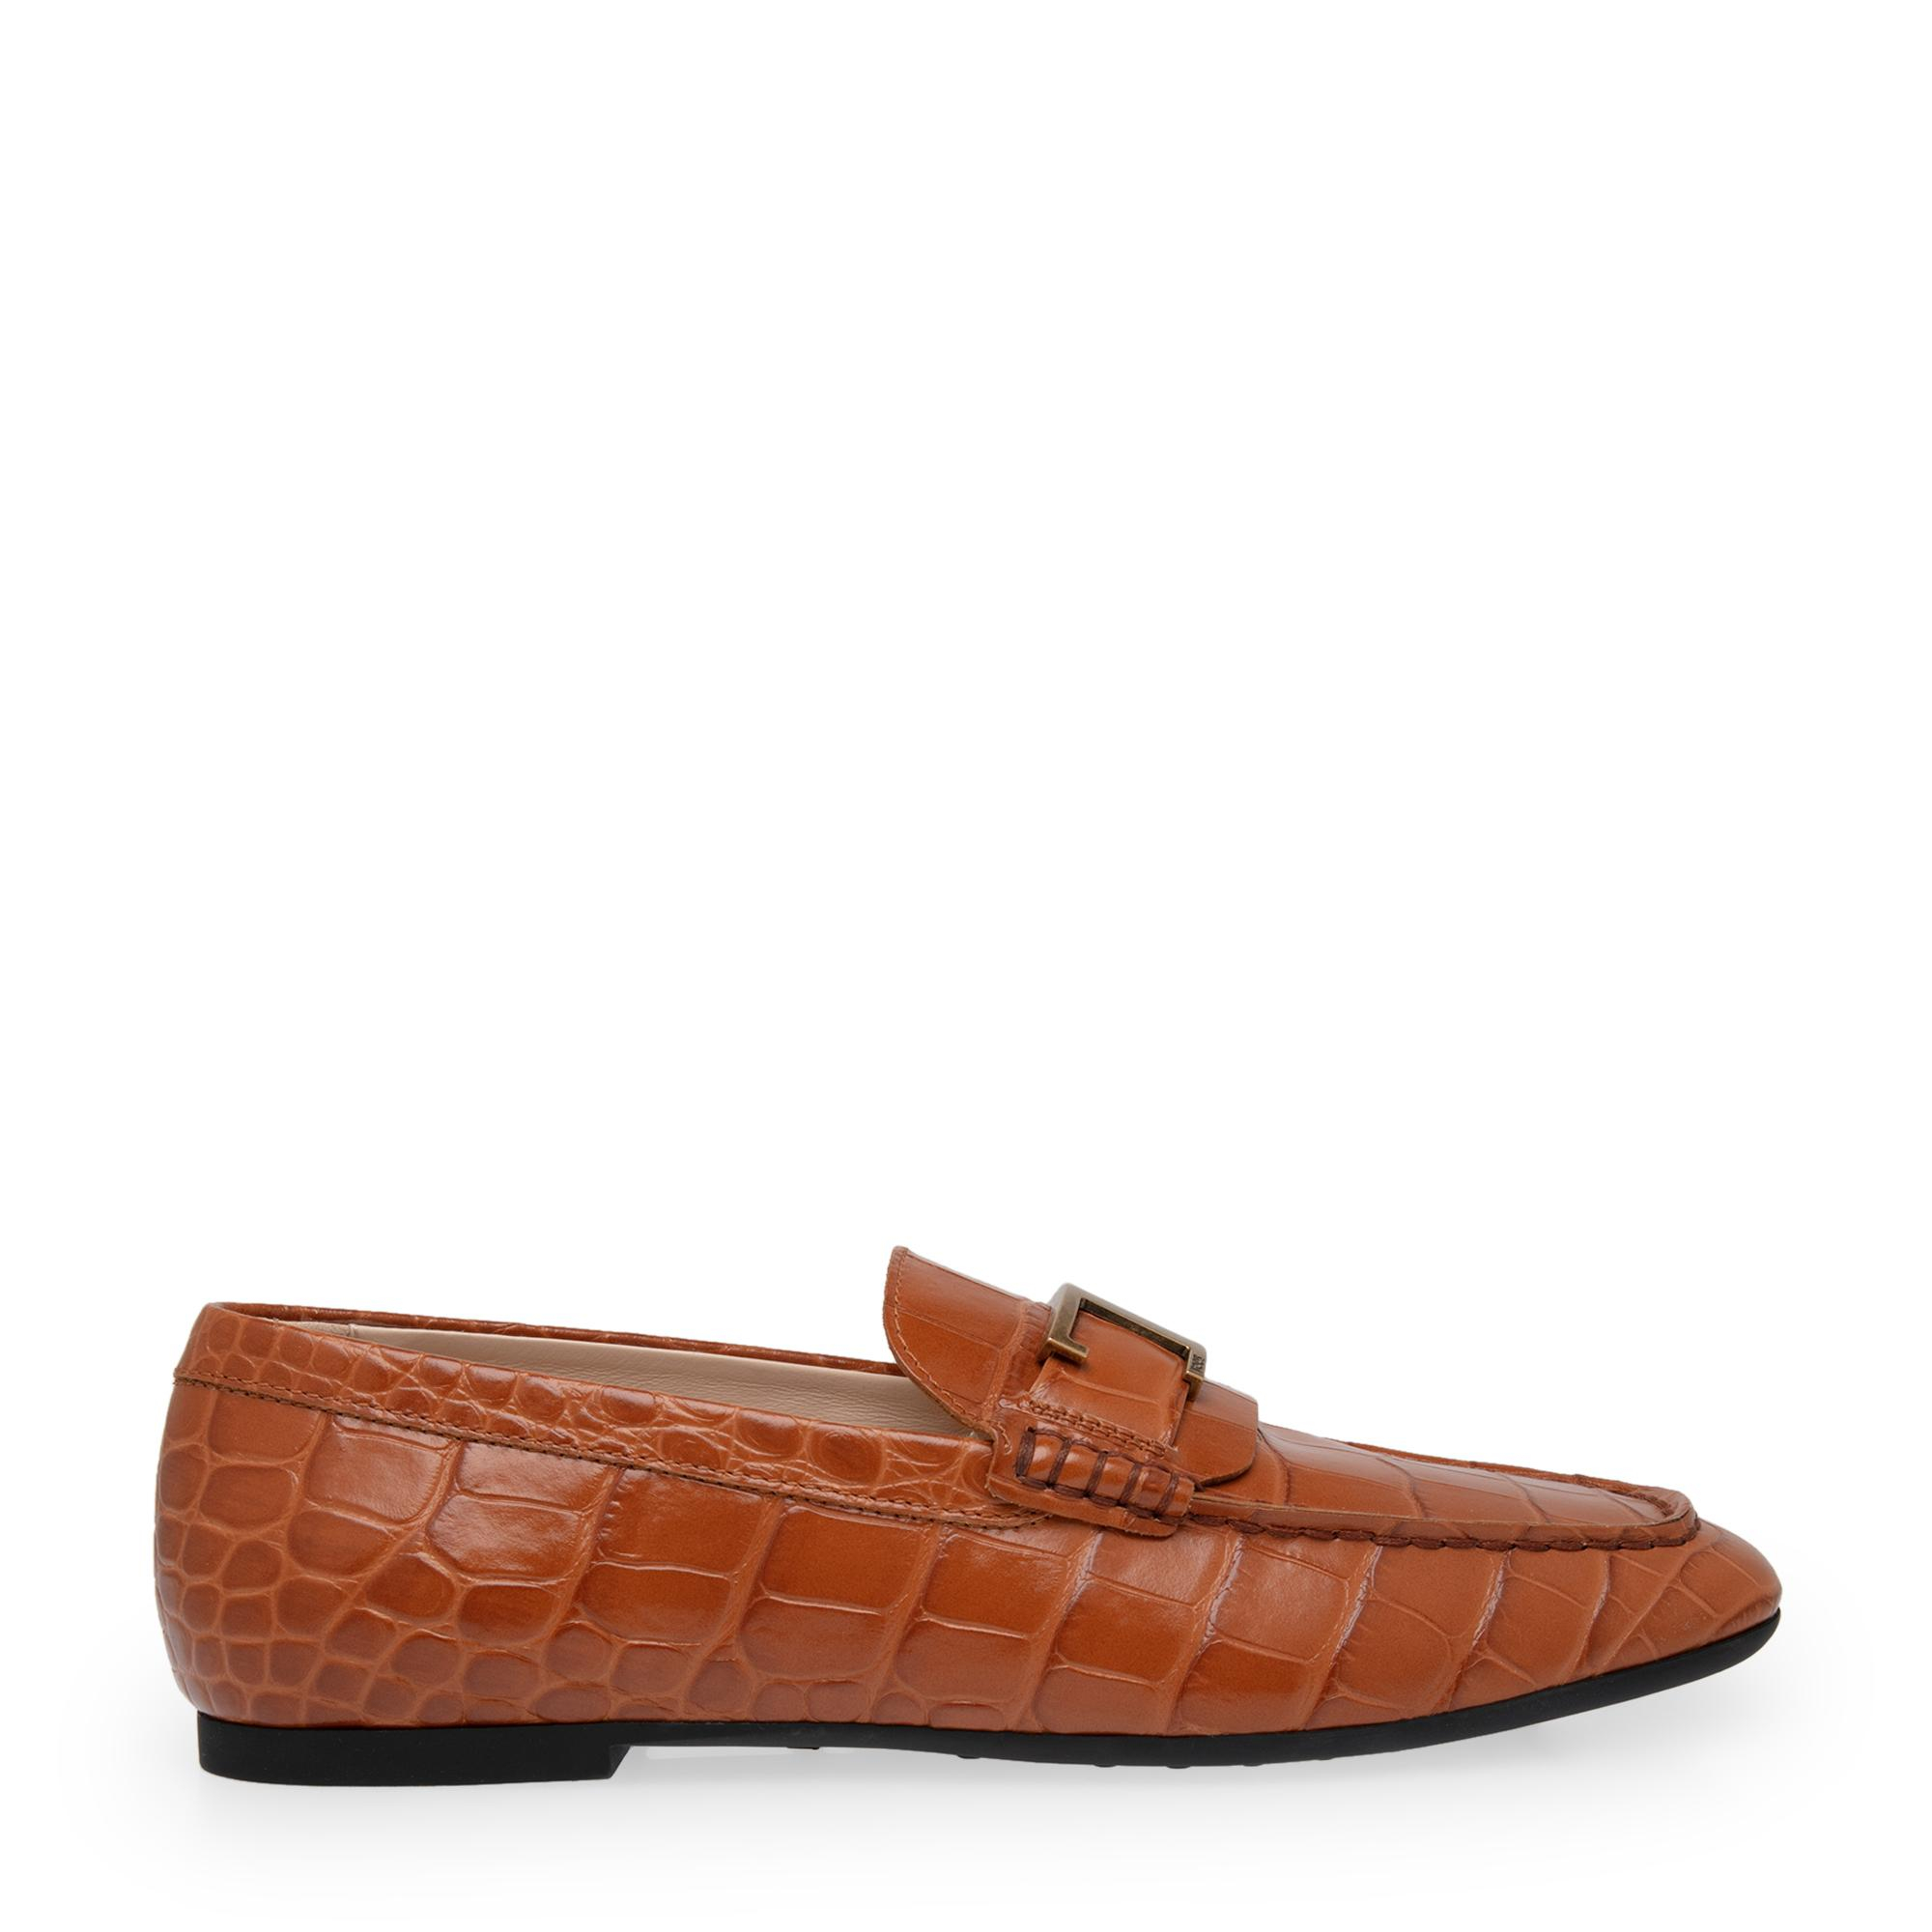 Leather T-bar loafers